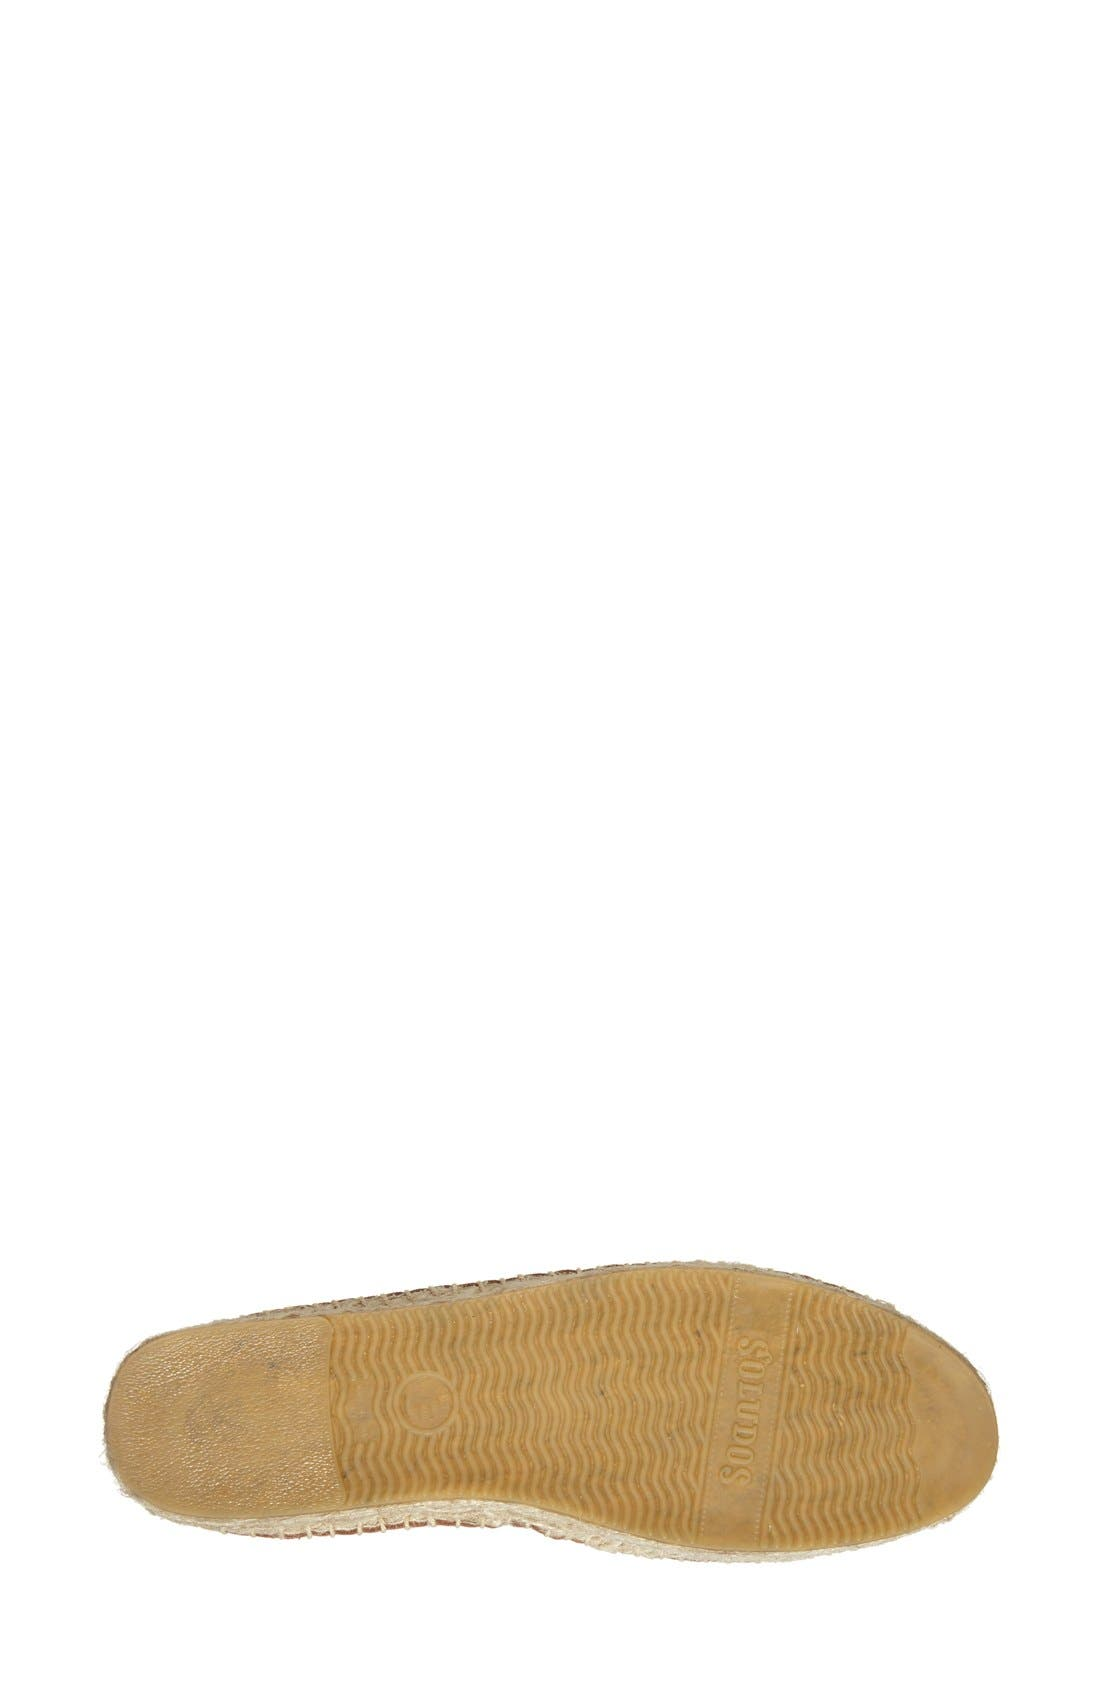 SOLUDOS, 'Smoking' Espadrille Platform Shoe, Alternate thumbnail 2, color, TAN LEATHER